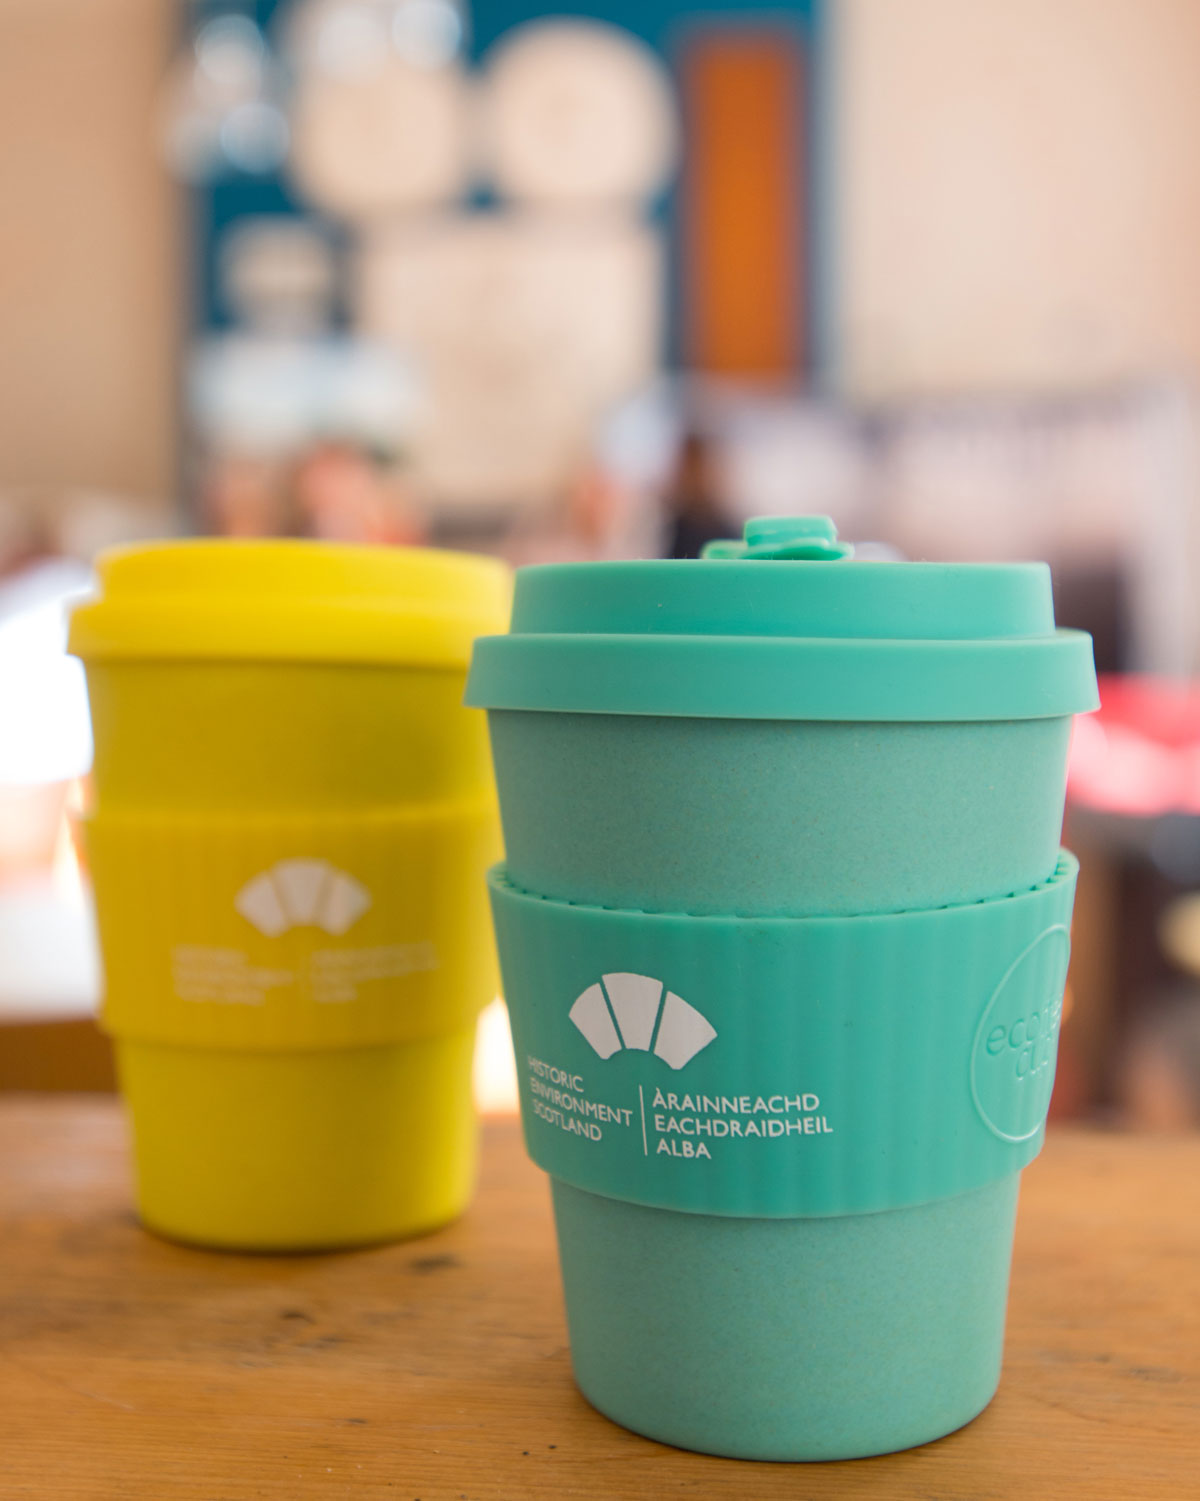 Two reusable cups, one green, one yellow, sit on a table in the Historic Environment Scotland cafe